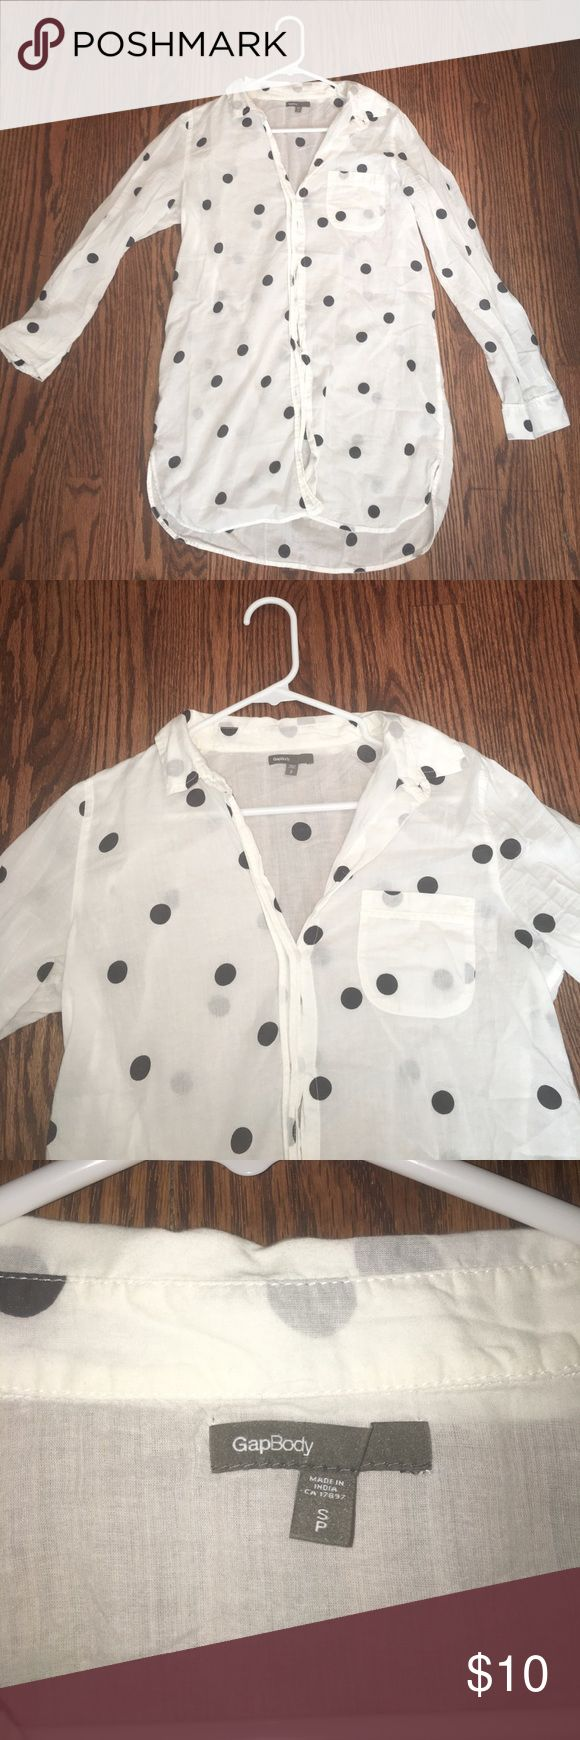 GapBody White and Navy Polka-Dot Blouse Sheer, soft material. Navy polka-dots. Button-up. Front pocket. Sleeves can roll up. Great condition, barely worn. GAP Tops